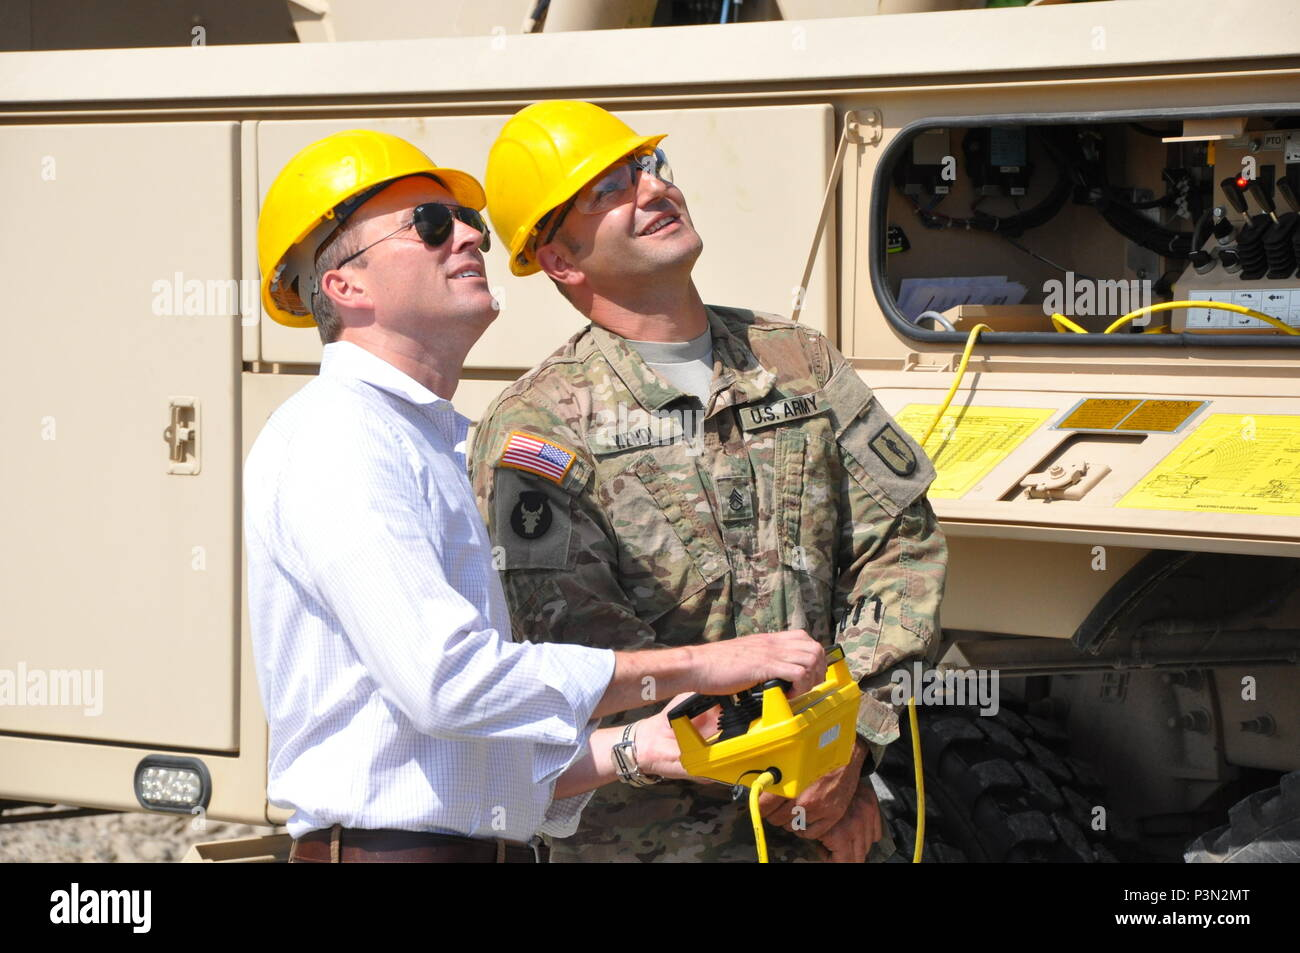 Camp Dodge Joint Maneuver Training Center Stock Photos & Camp Dodge